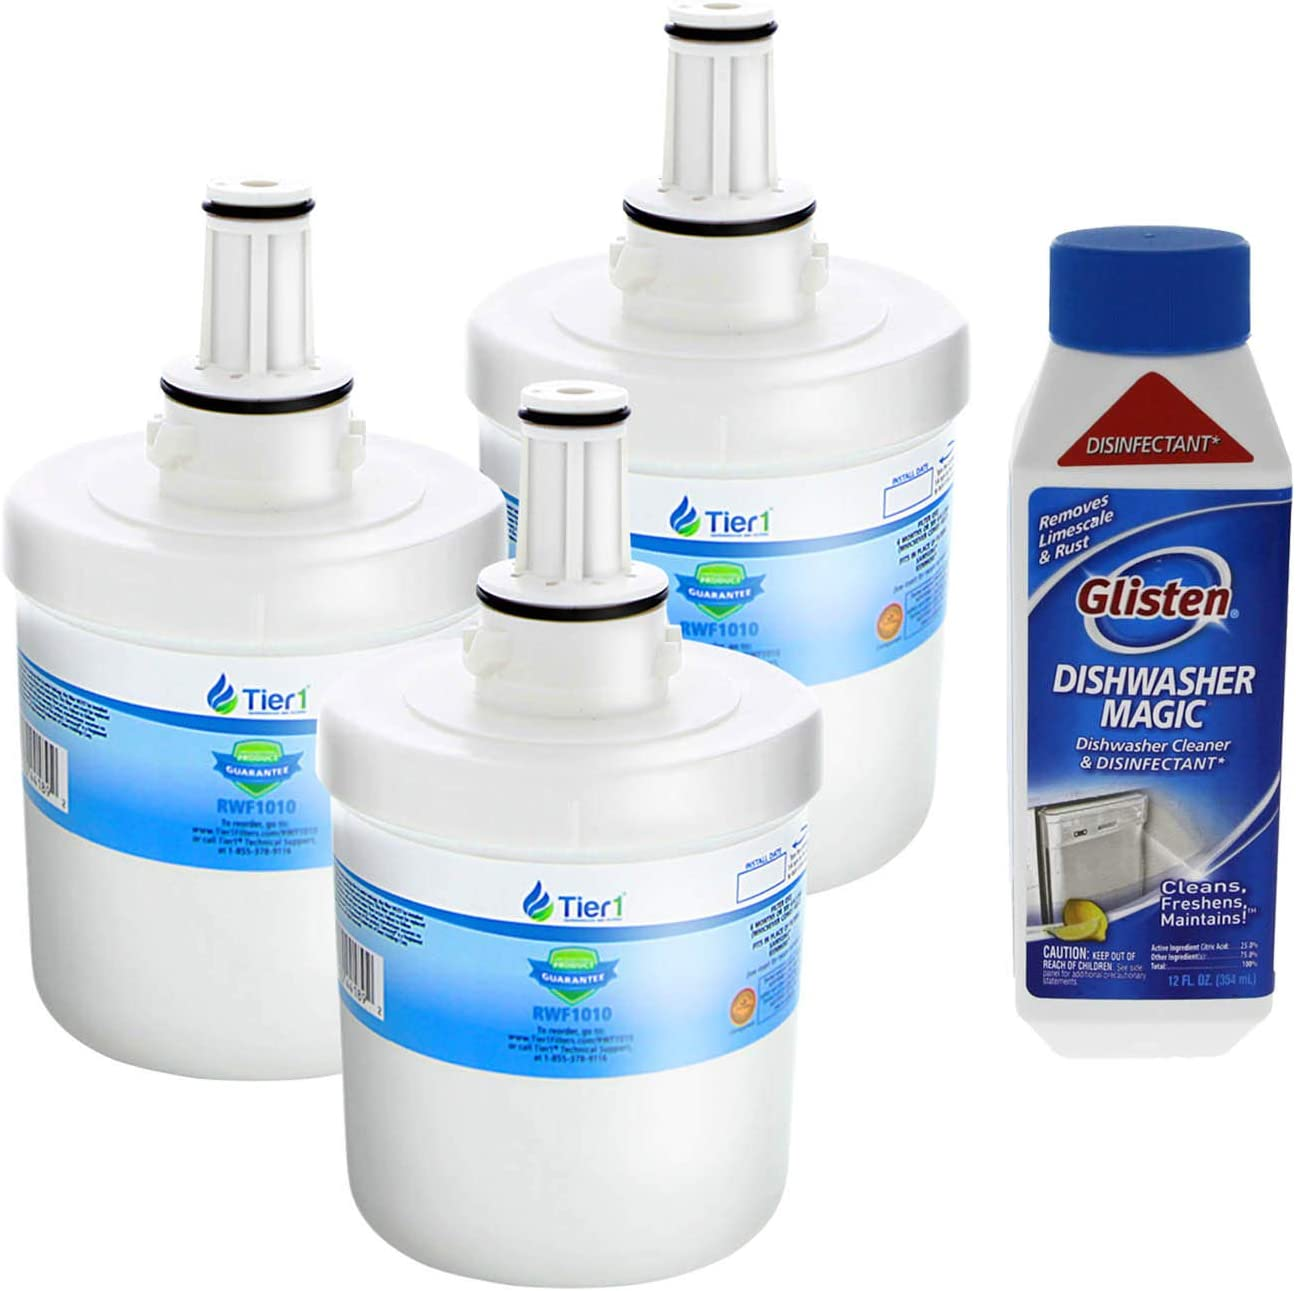 Tier1 Replacement for Samsung DA29-00003G Refrigerator Water Filter 3-Pack and DM06N Glisten Dishwasher Cleaner Combo